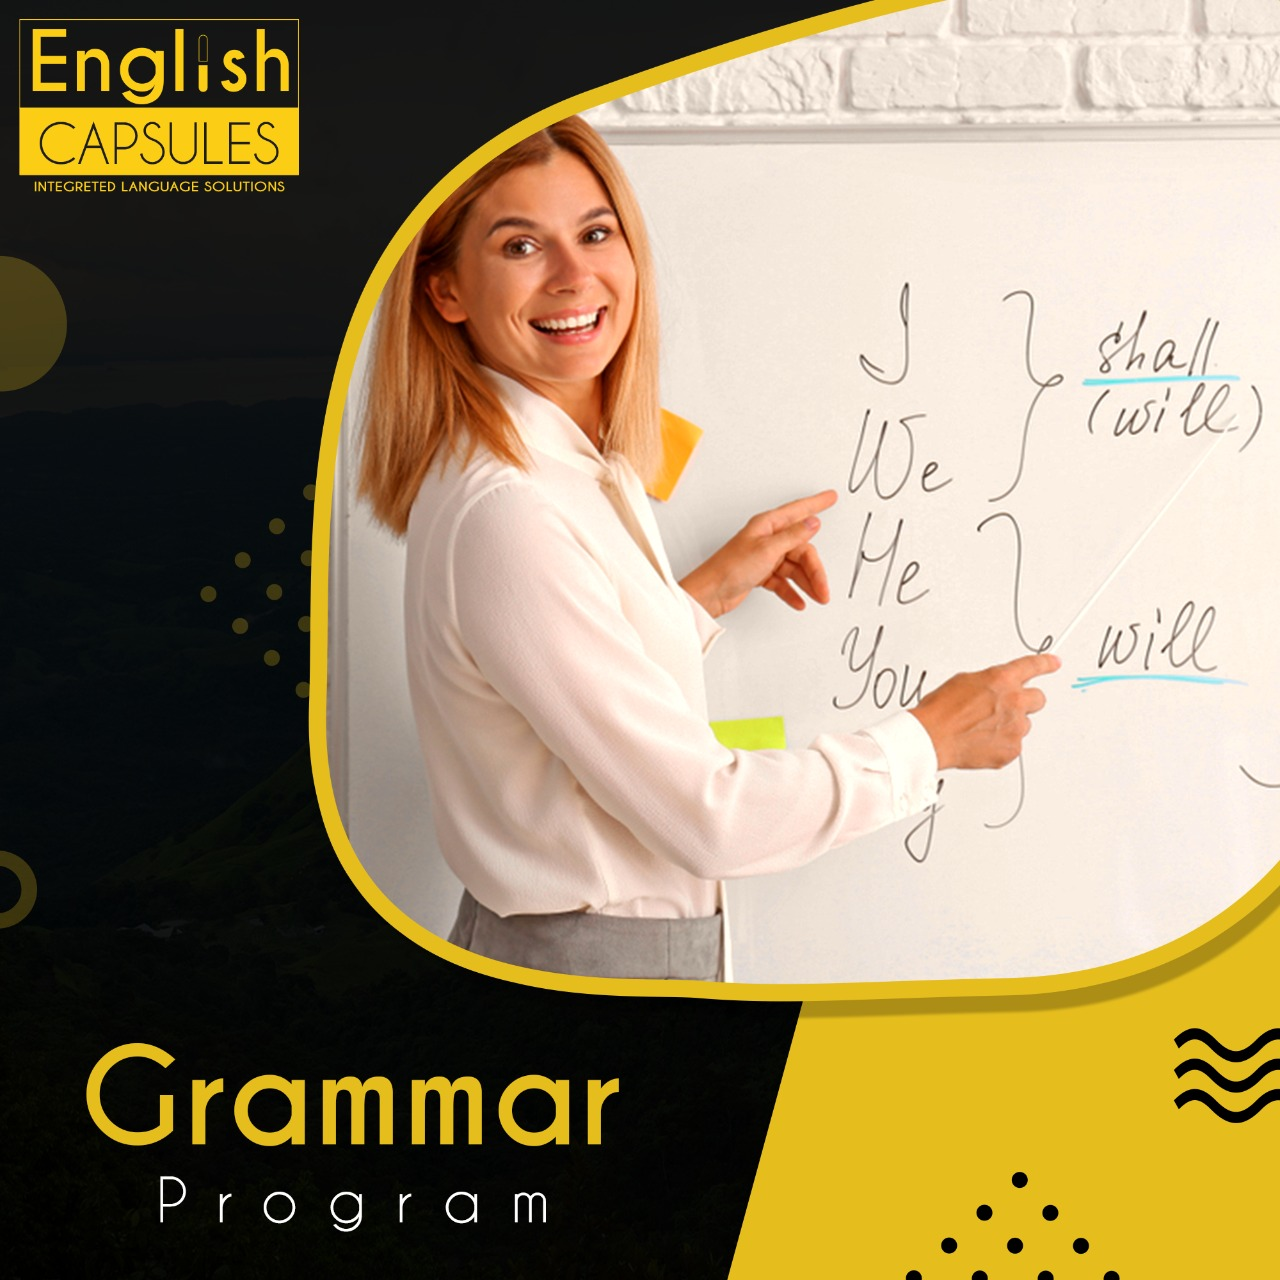 Grammar Program